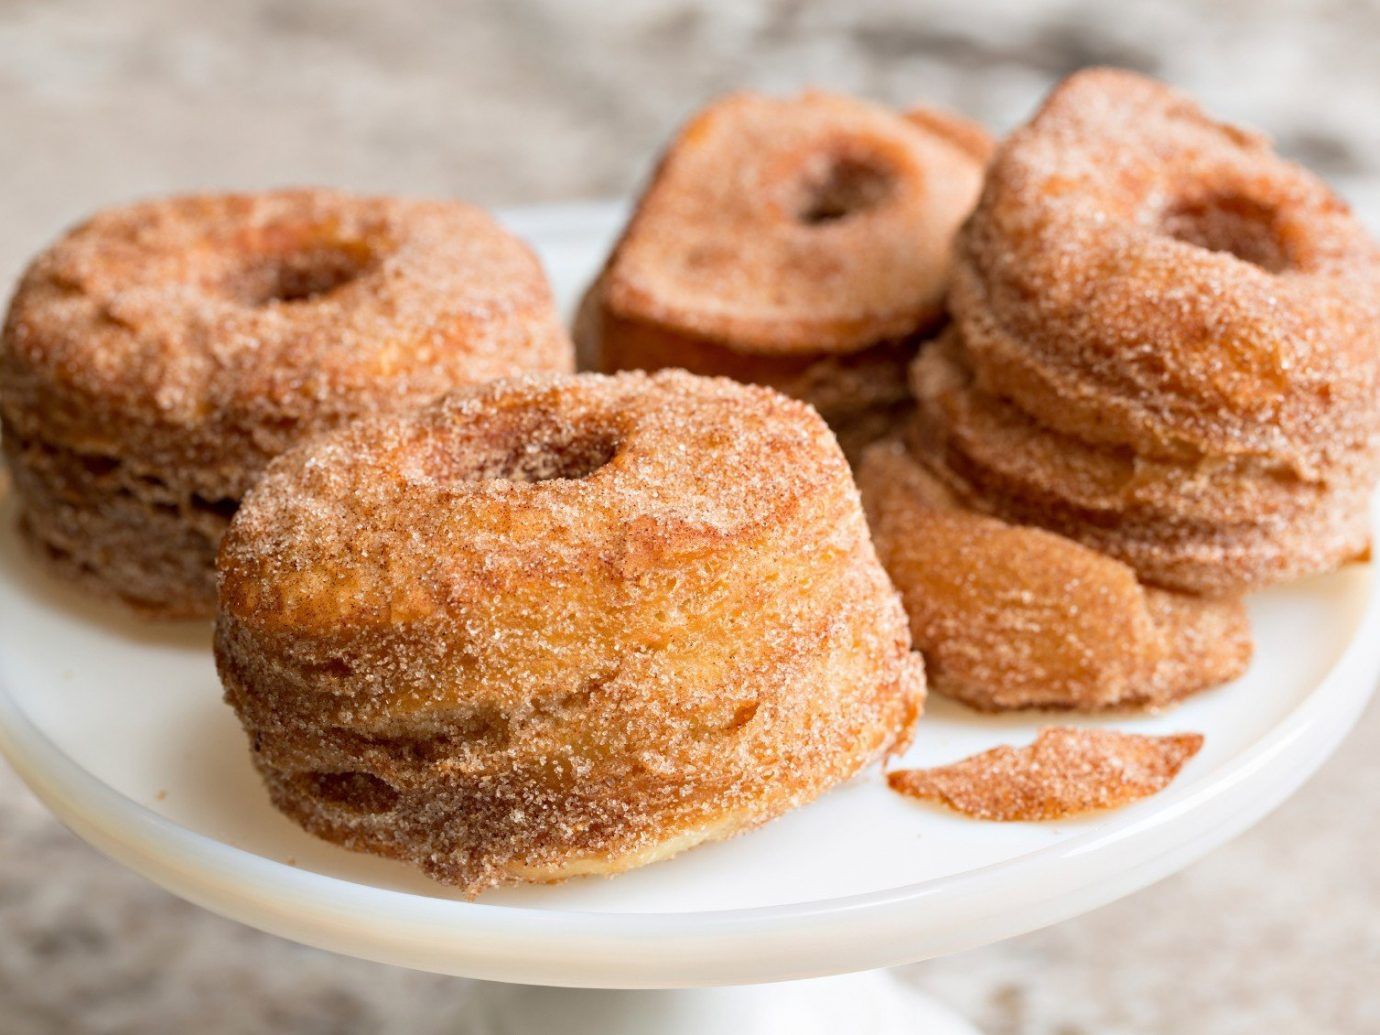 Summer Series plate doughnut food dessert snickerdoodle baked goods cuisine dish produce pastry flavor baking close containing